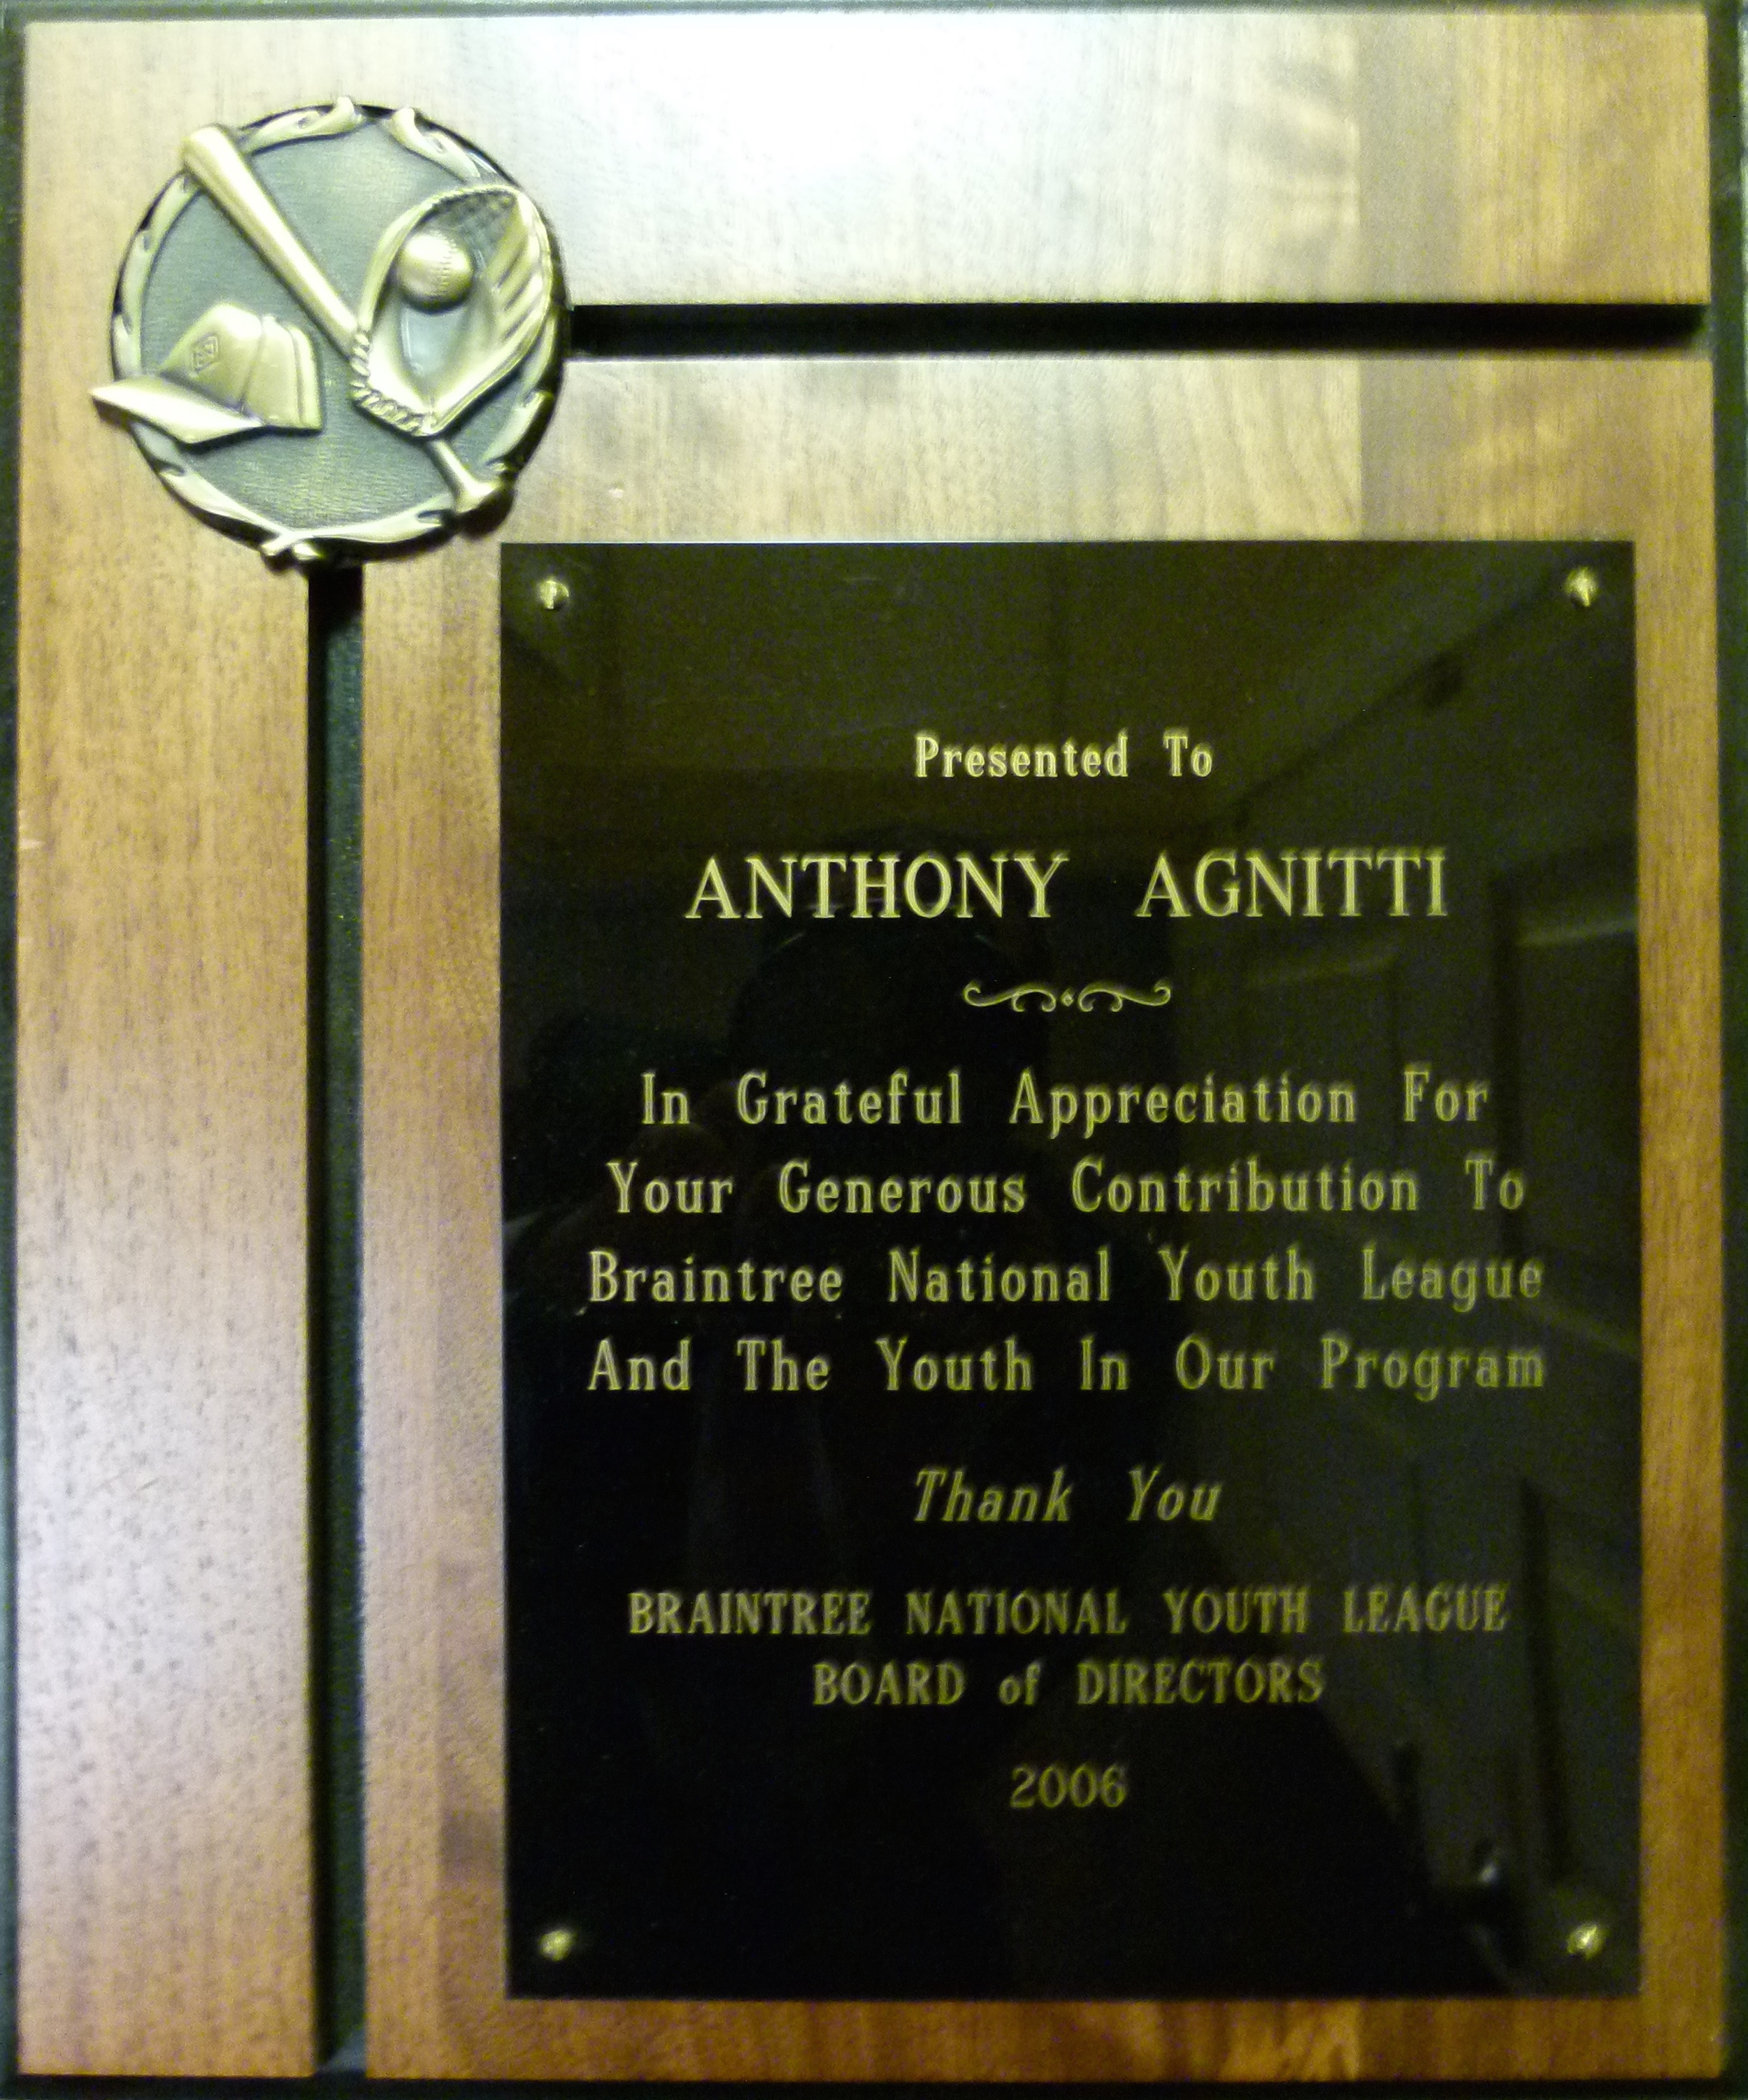 Anthony-Agnitti-Braintree-youth-board-of-directors